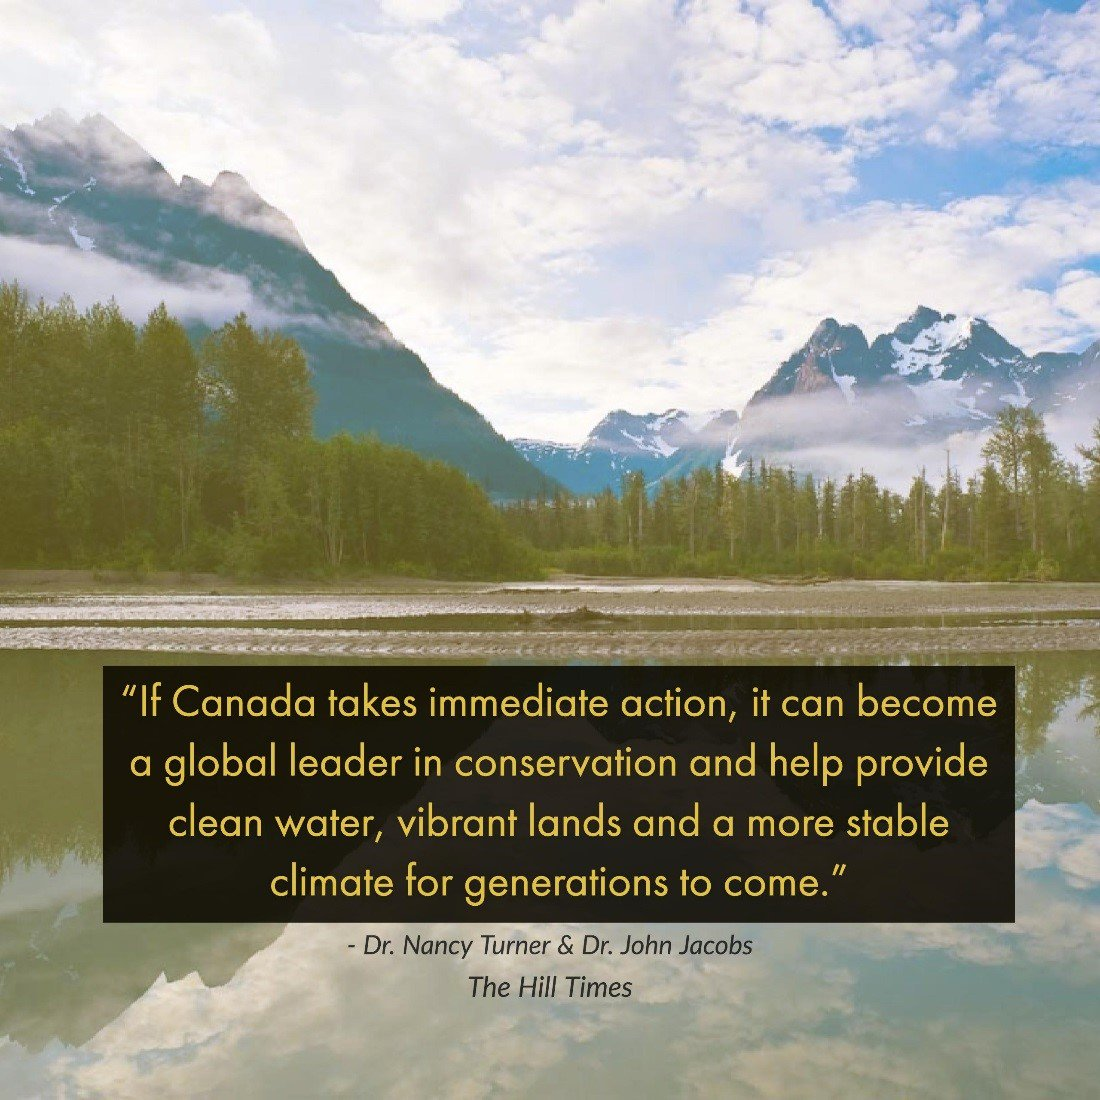 """The world pledged to protect at least 17% of their lands by 2020. Canada has a UNIQUE opportunity to point the way forward."" -- @Jjacobs2050 &amp; Turner @TheHillTimes  http:// bit.ly/2hsyPNx  &nbsp;   #Conservation #Boreal <br>http://pic.twitter.com/yyLkjdCZzE"